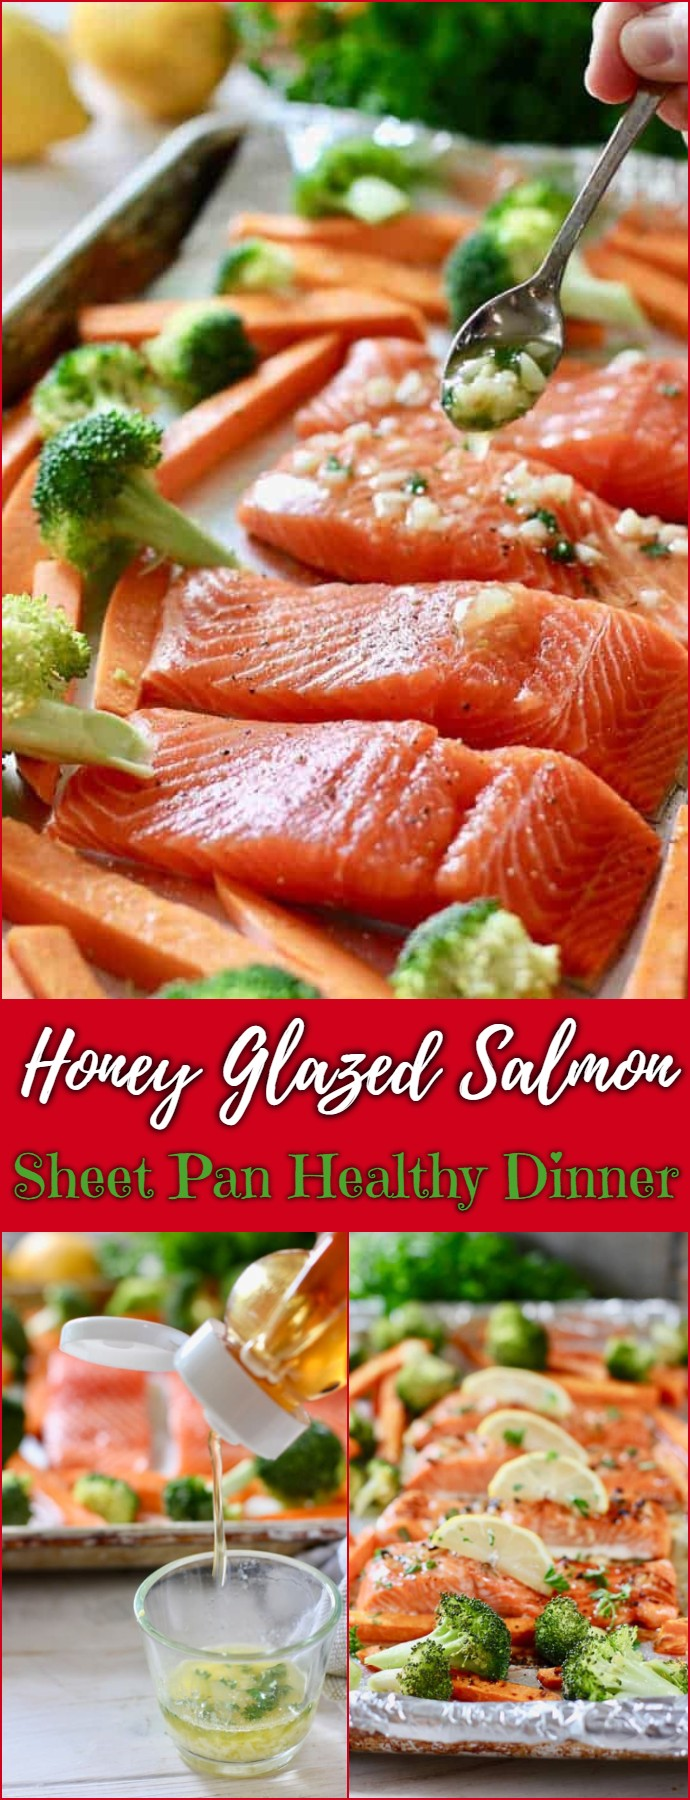 Honey Glazed Salmon Sheet Pan Healthy Dinner